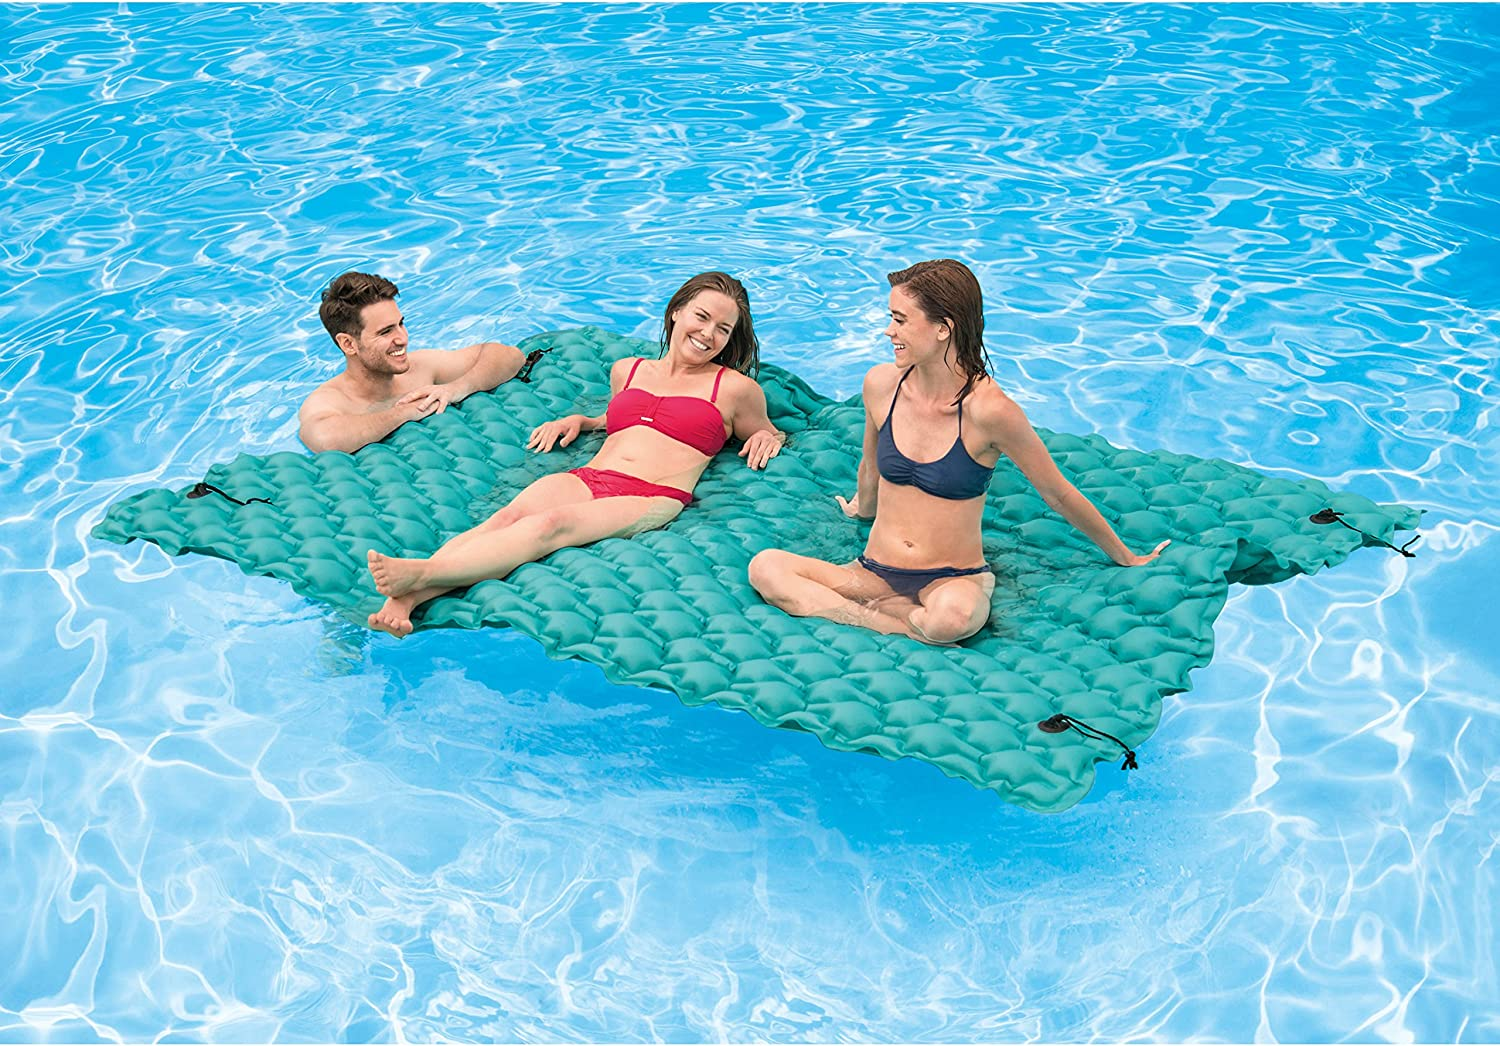 Amazon.com: Intex - Alfombrilla flotante hinchable gigante ...